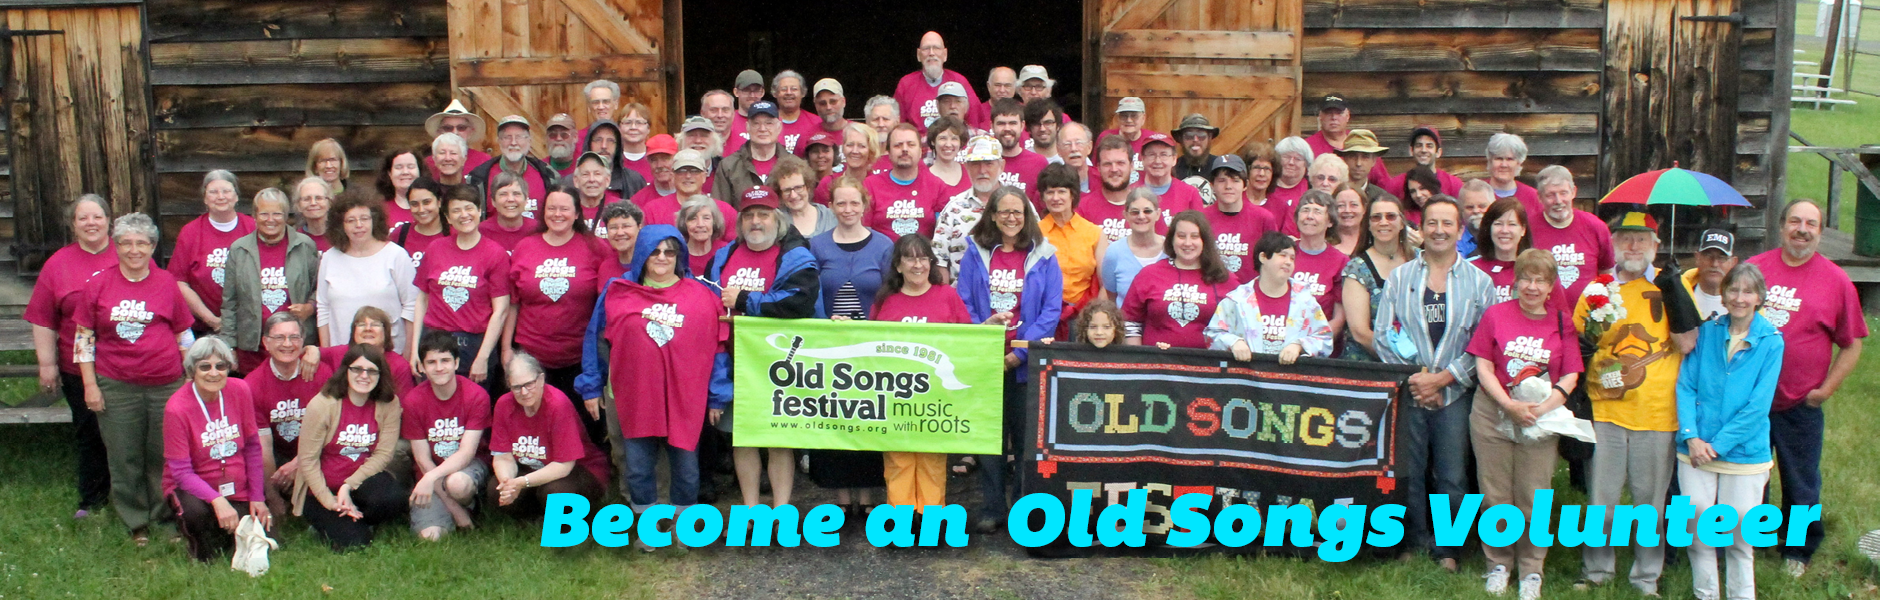 Volunteer at the Old Songs Festival